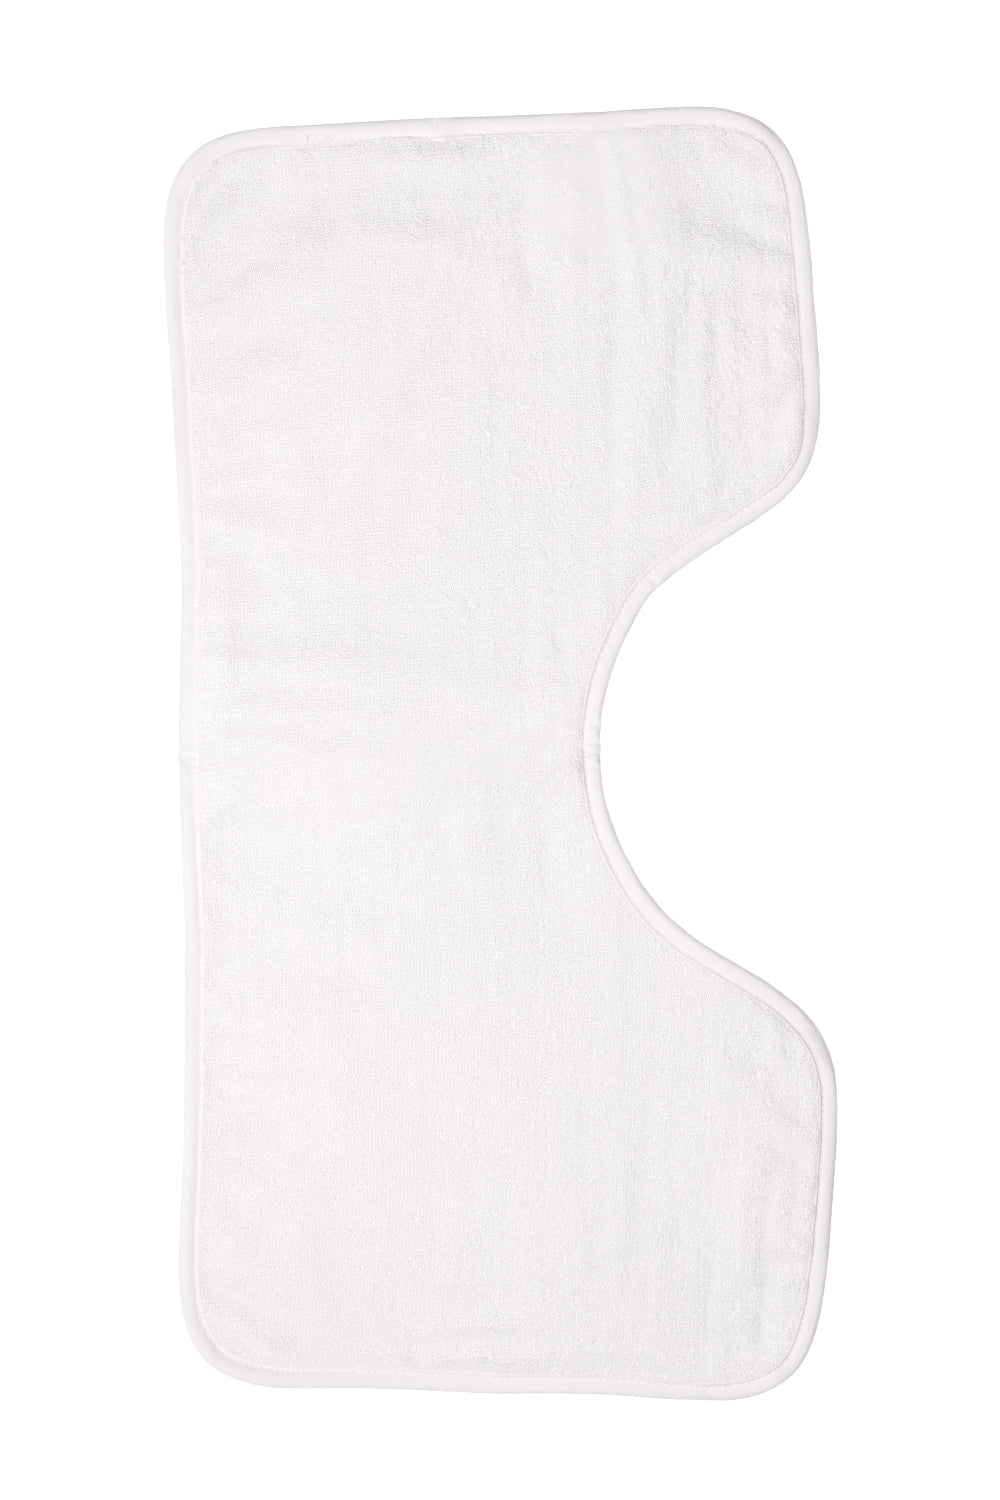 Plain white Rectangular Burp Cloths